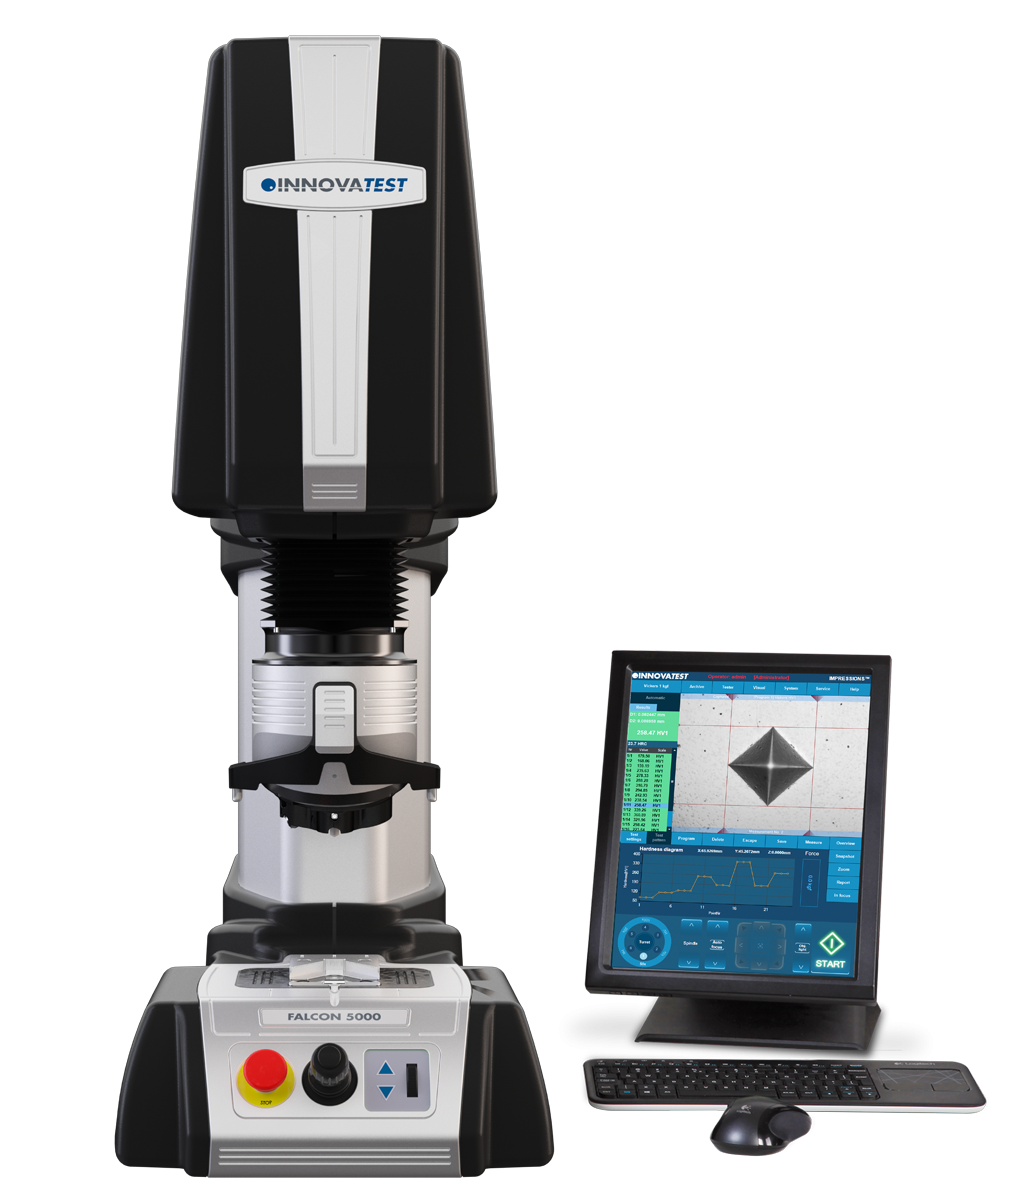 innovatest-falcon-5000-front-vickers-hardness-tester